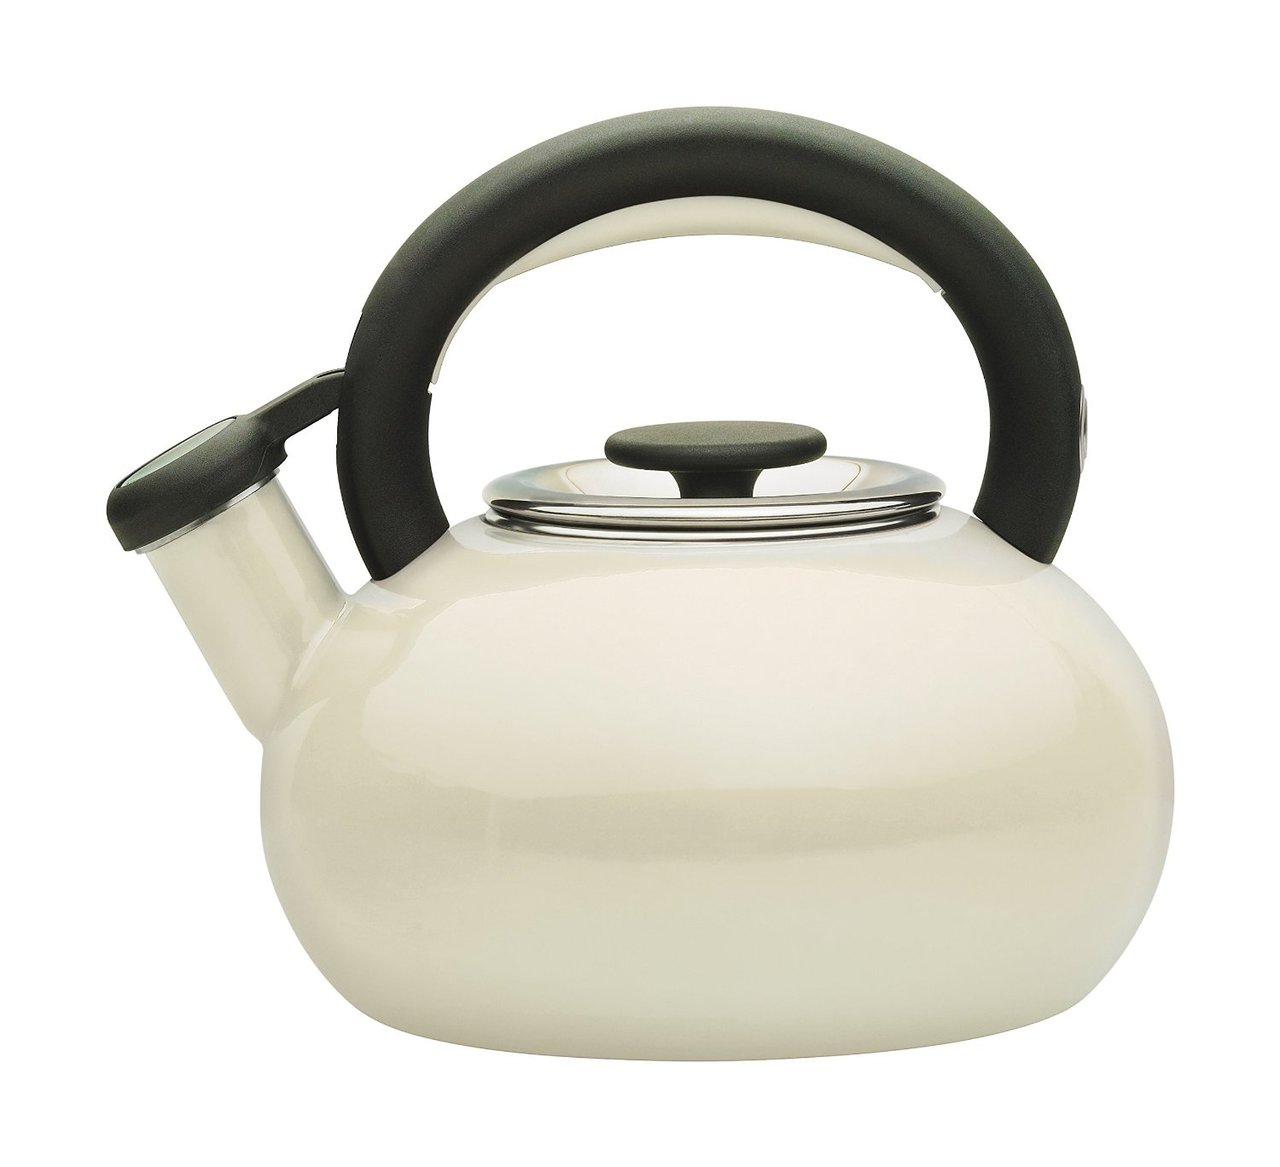 Prestige Enamel Stove Top Kettle 1.4 Litre in Almond